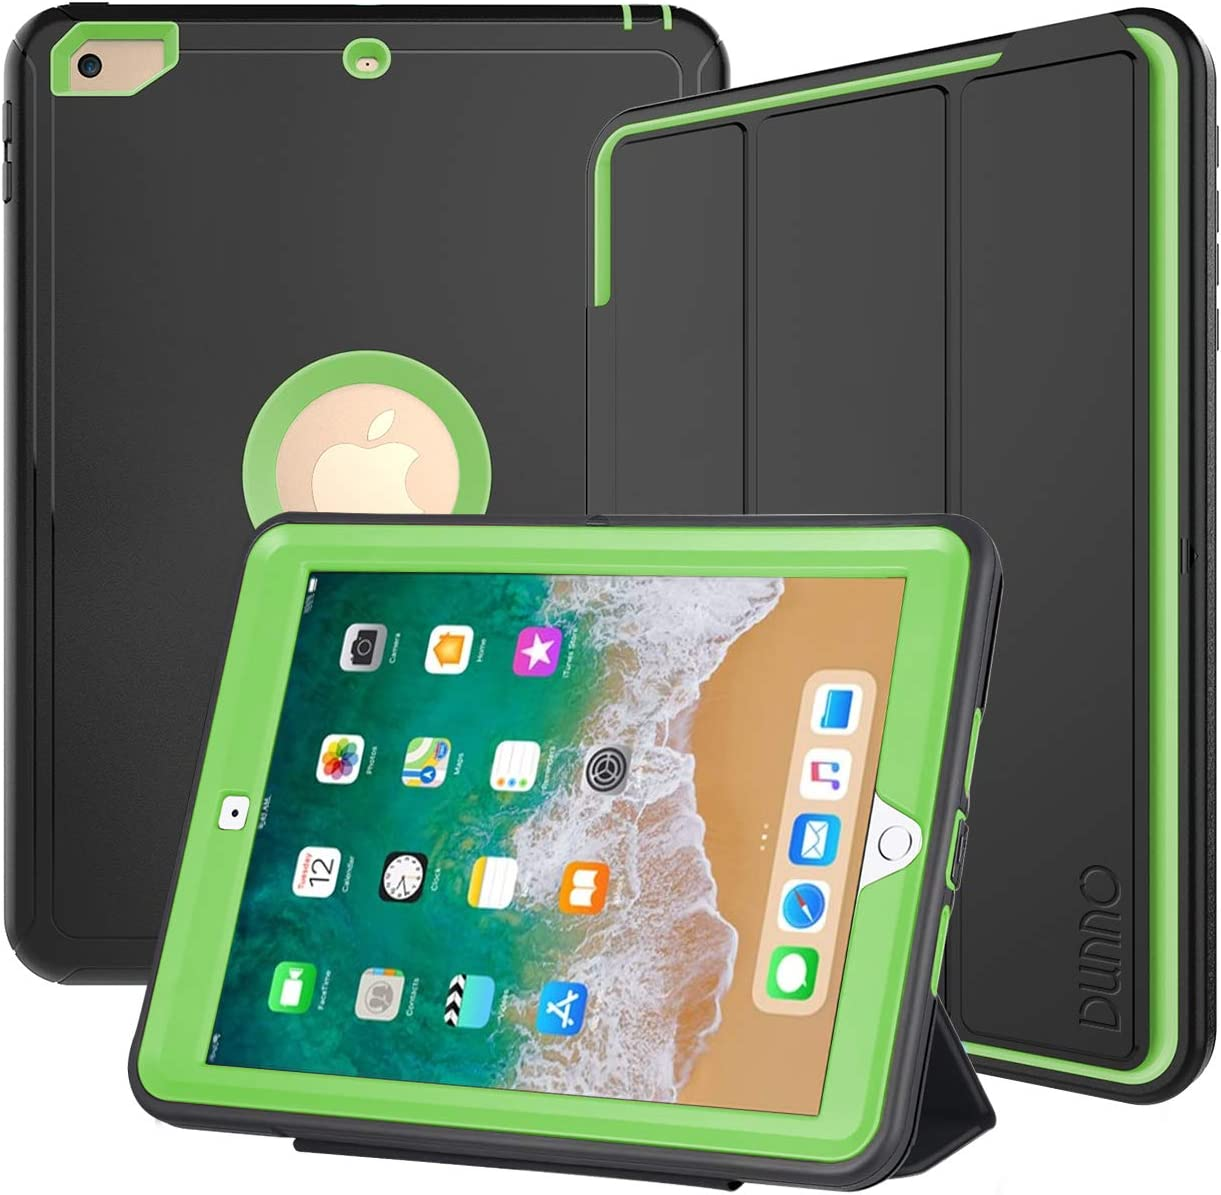 DUNNO iPad 9.7 Inch Case 2017/2018, iPad 6th/5th Generation Case, Heavy Duty Full Protection Smart Case with Detachable Screen Cover/Stand for iPad 9.7 Released in 2018/2017 (Black+Green)